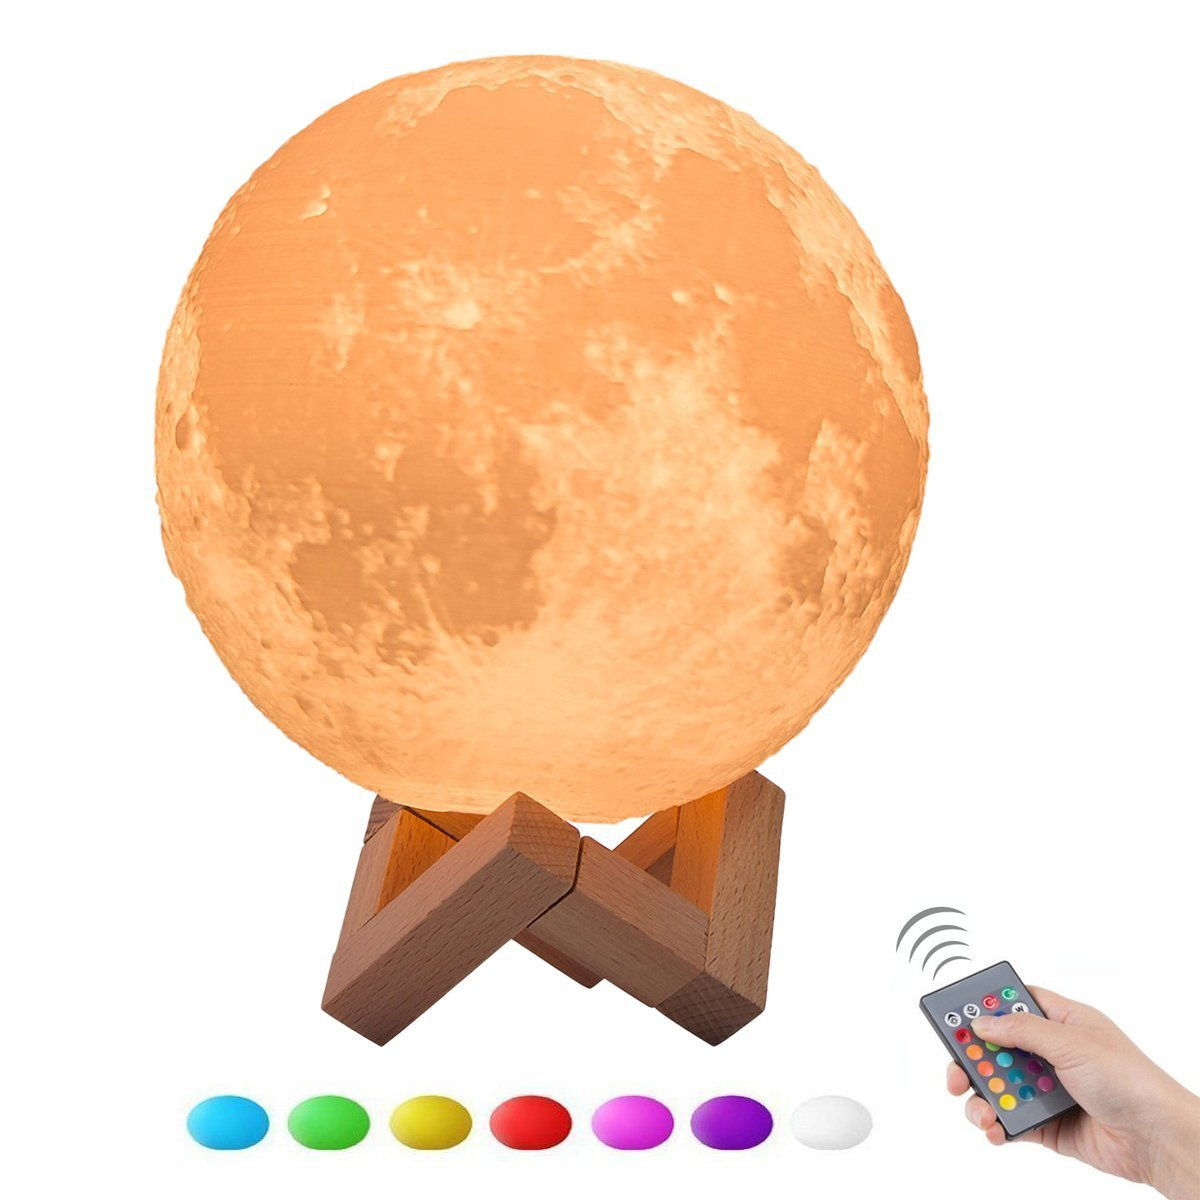 3D Moon Lamp,WONFAST Adjustablbe Brightness Color Changing LED Ambient Night Light USB Charging With Remote Control Home Decorative Lights for Baby Bedroom Birthday Christmas (7.87 inch/20 CM)